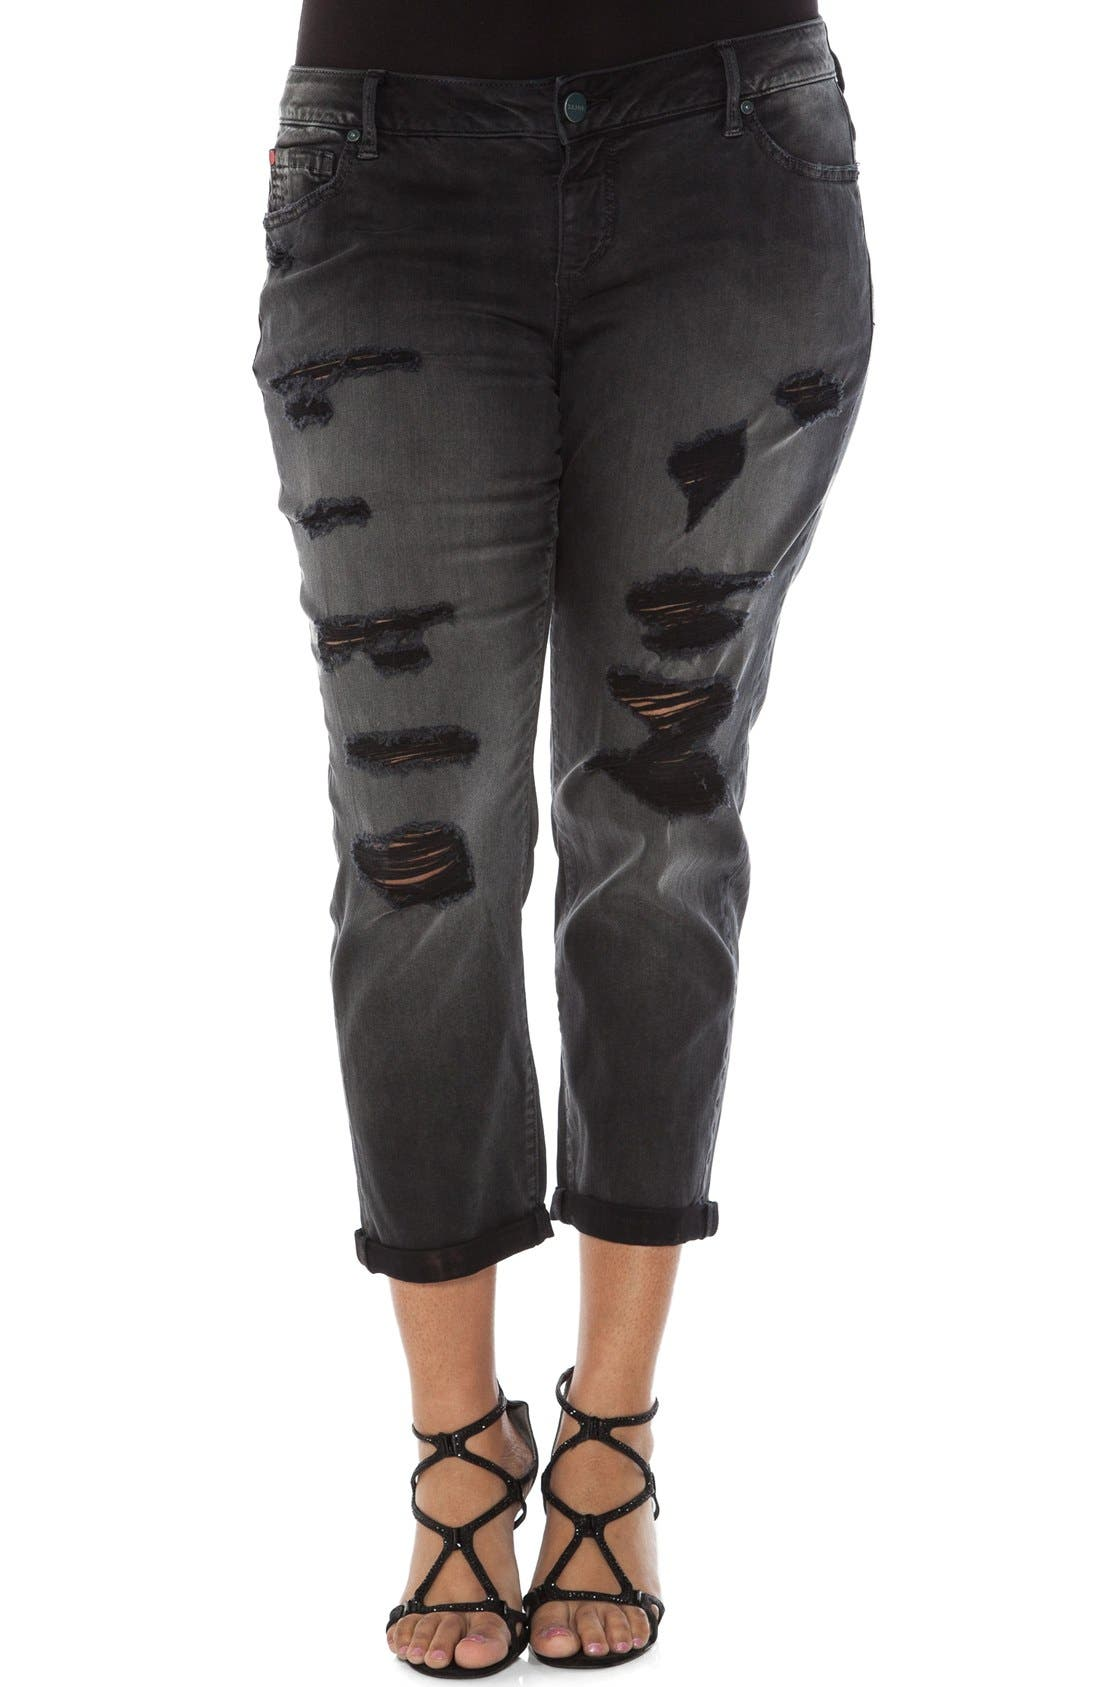 Alternate Image 1 Selected - SLINK Jeans Distressed Roll Cuff Stretch Boyfriend Jeans (Plus Size)